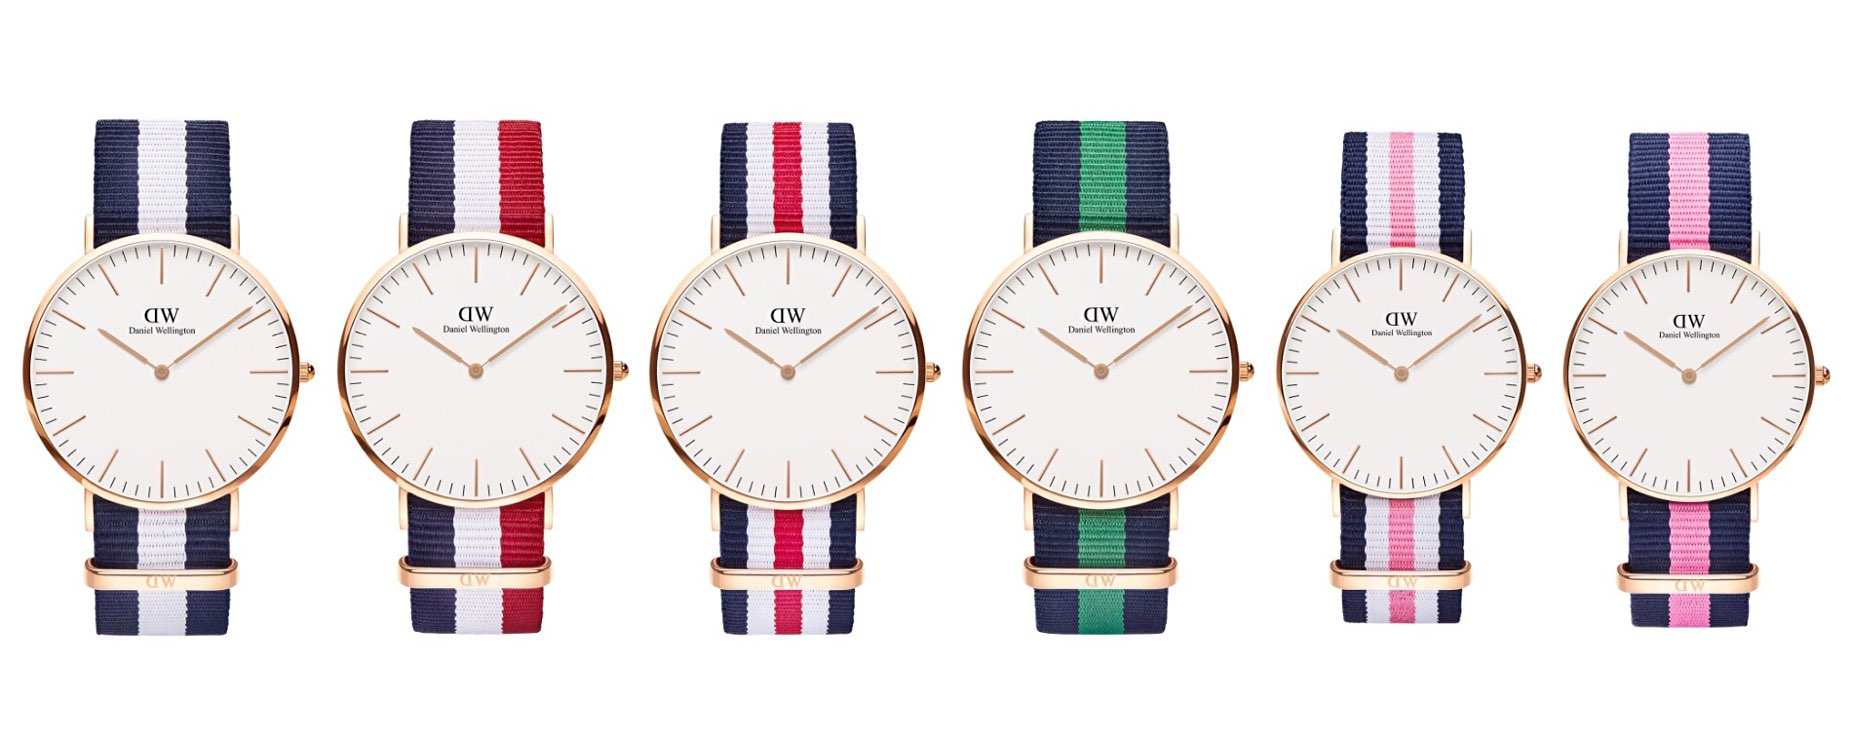 "The Daniel Wellington ""Classic Collection"" NATO-strap watch. ($175 for [36mm](https://www.danielwellington.com/us/classic-36), $195 for [40mm](https://www.danielwellington.com/us/classic-40))"